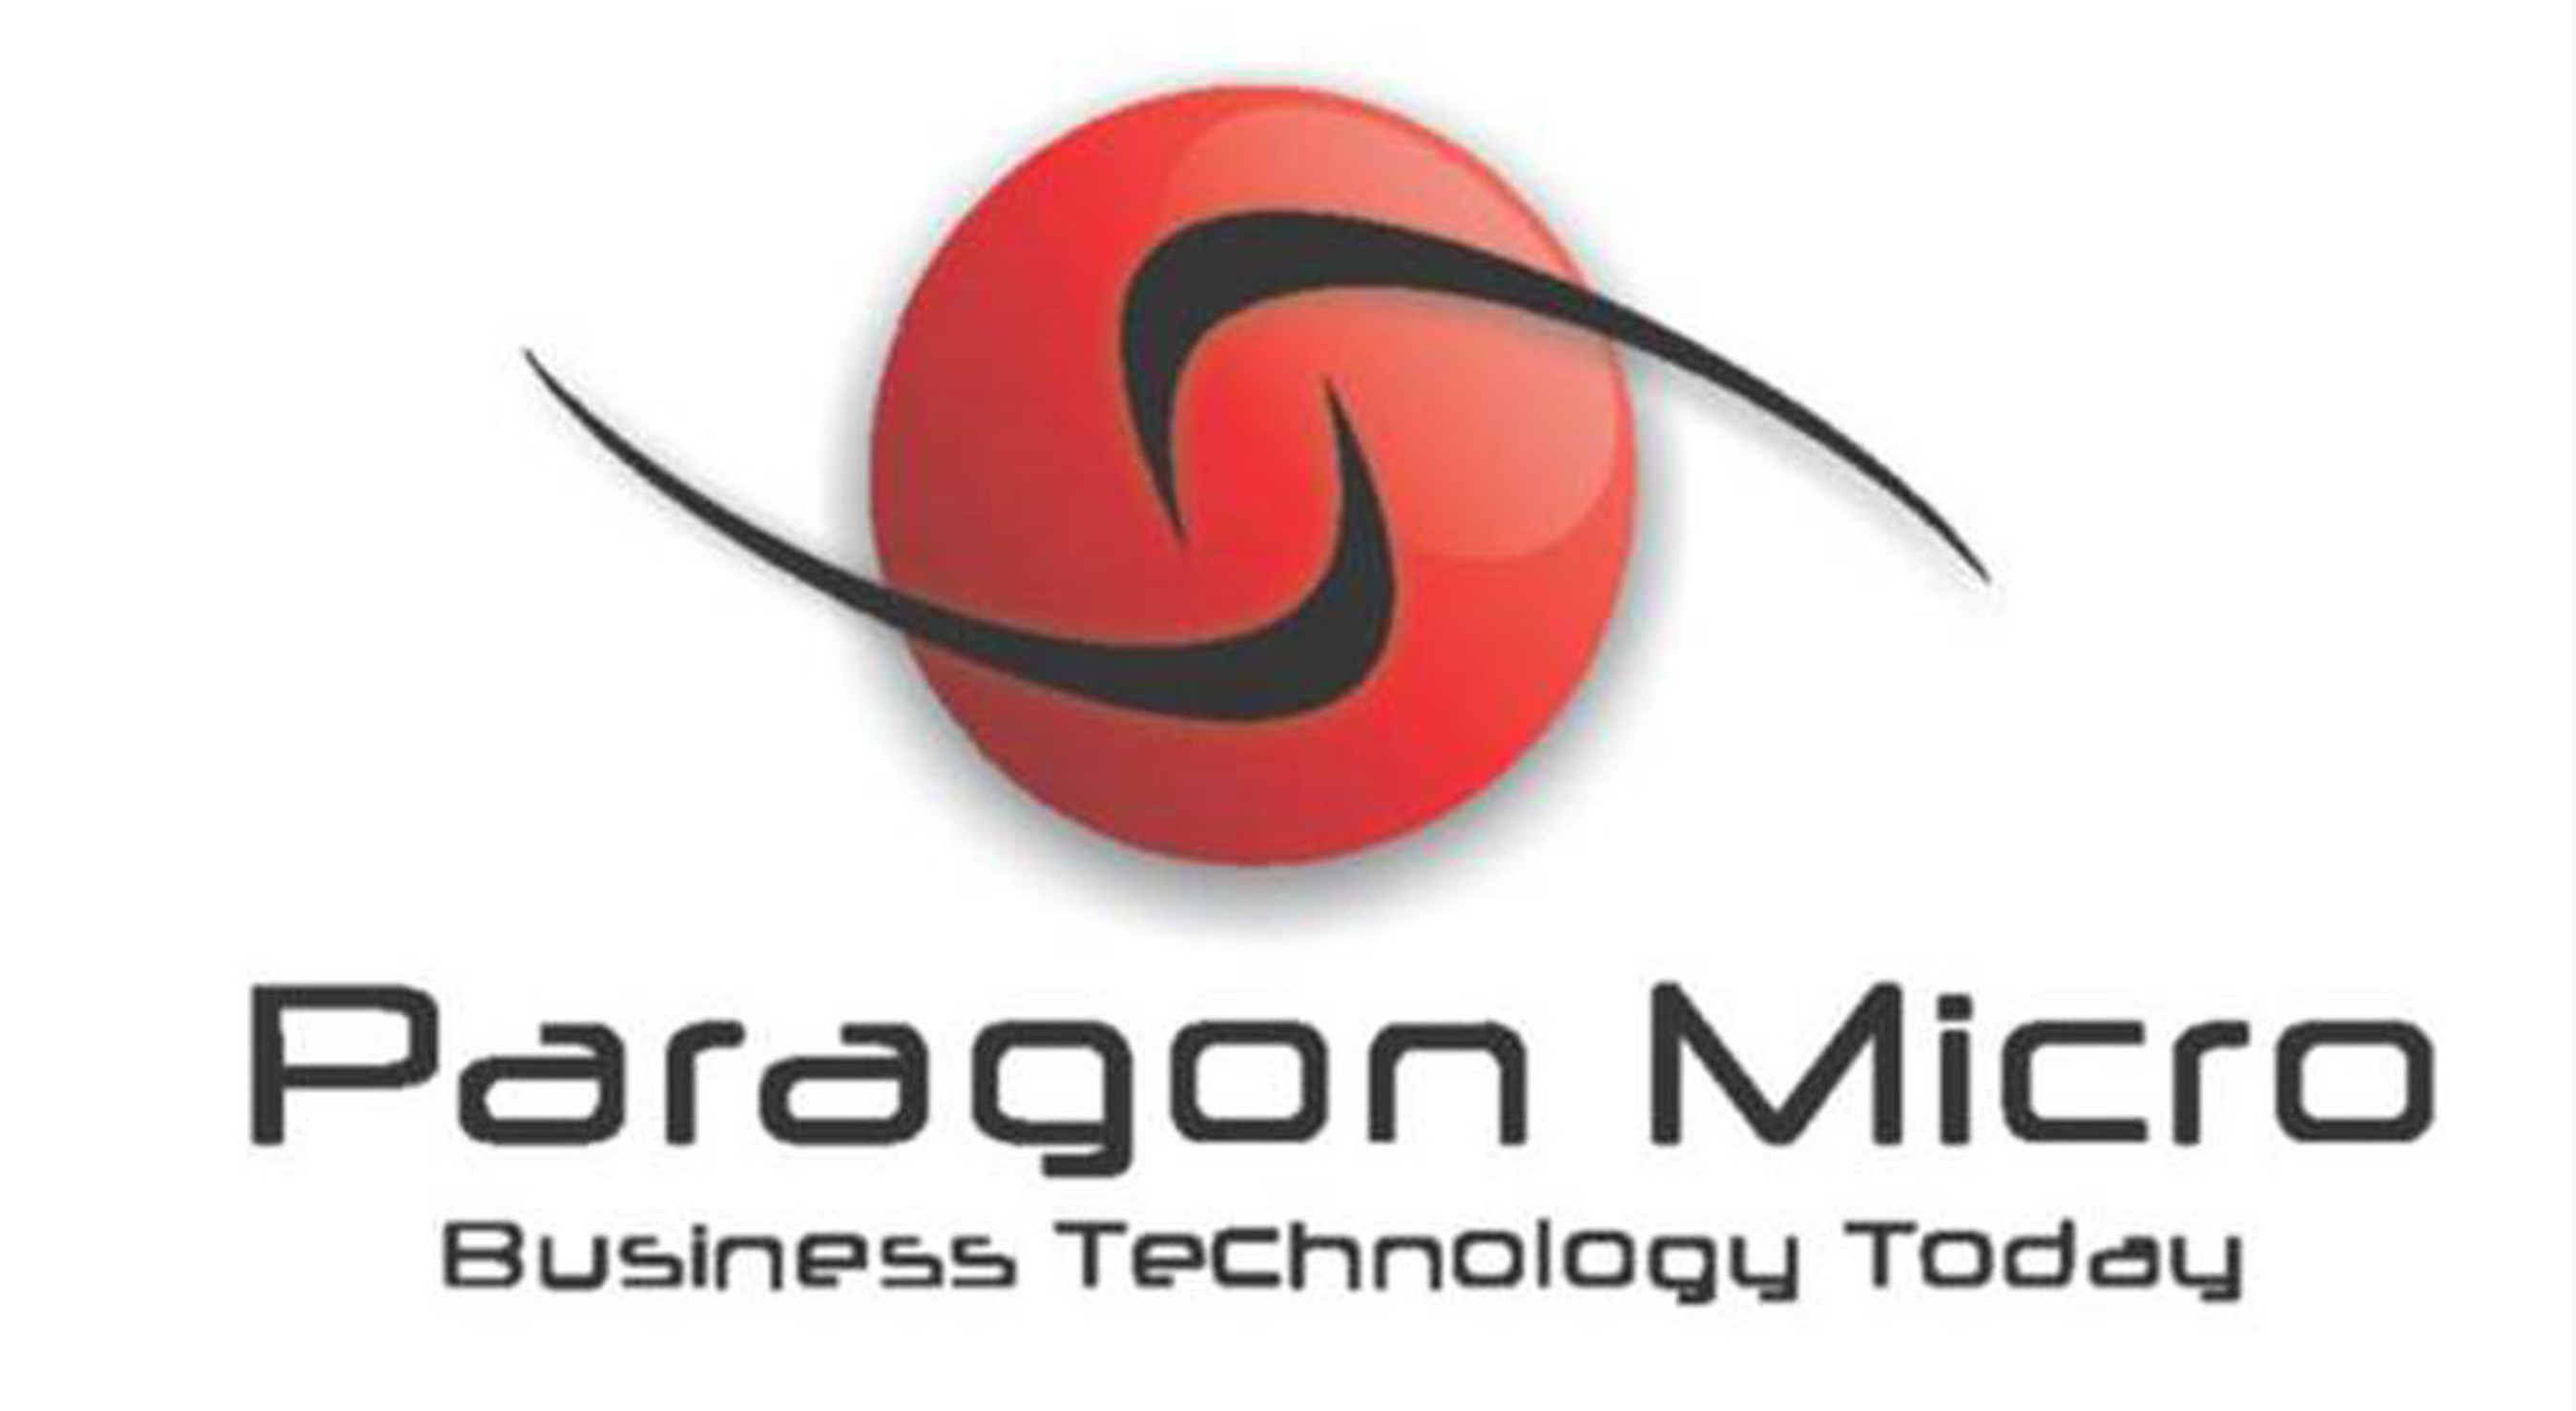 Paragon Micro Named Dell EMC 2016 SIM Partner of the Year